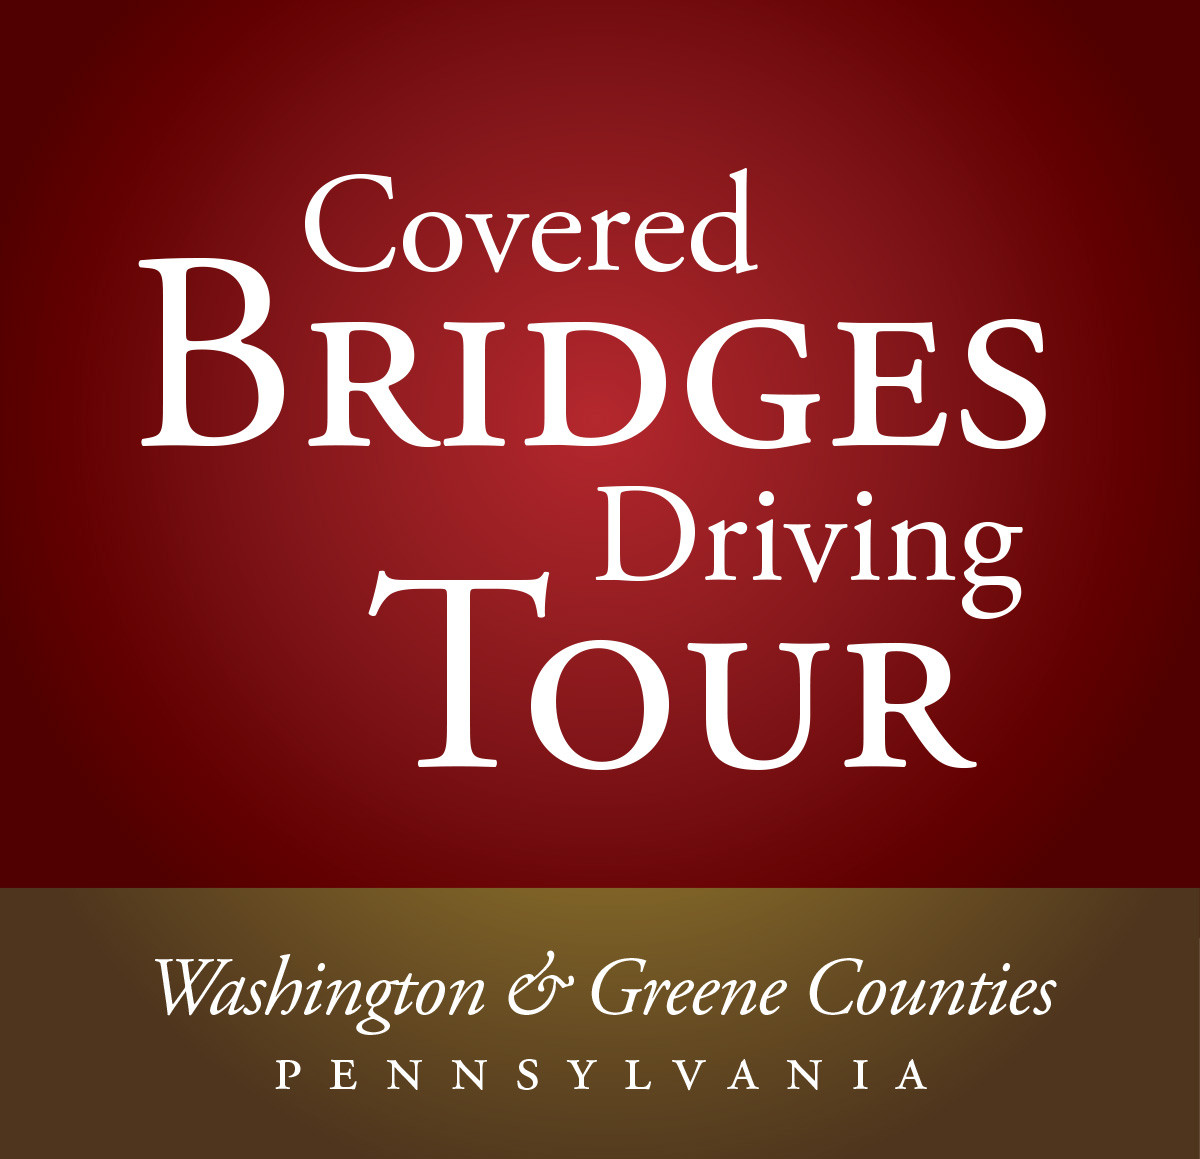 Covered Bridges Driving Tour logo